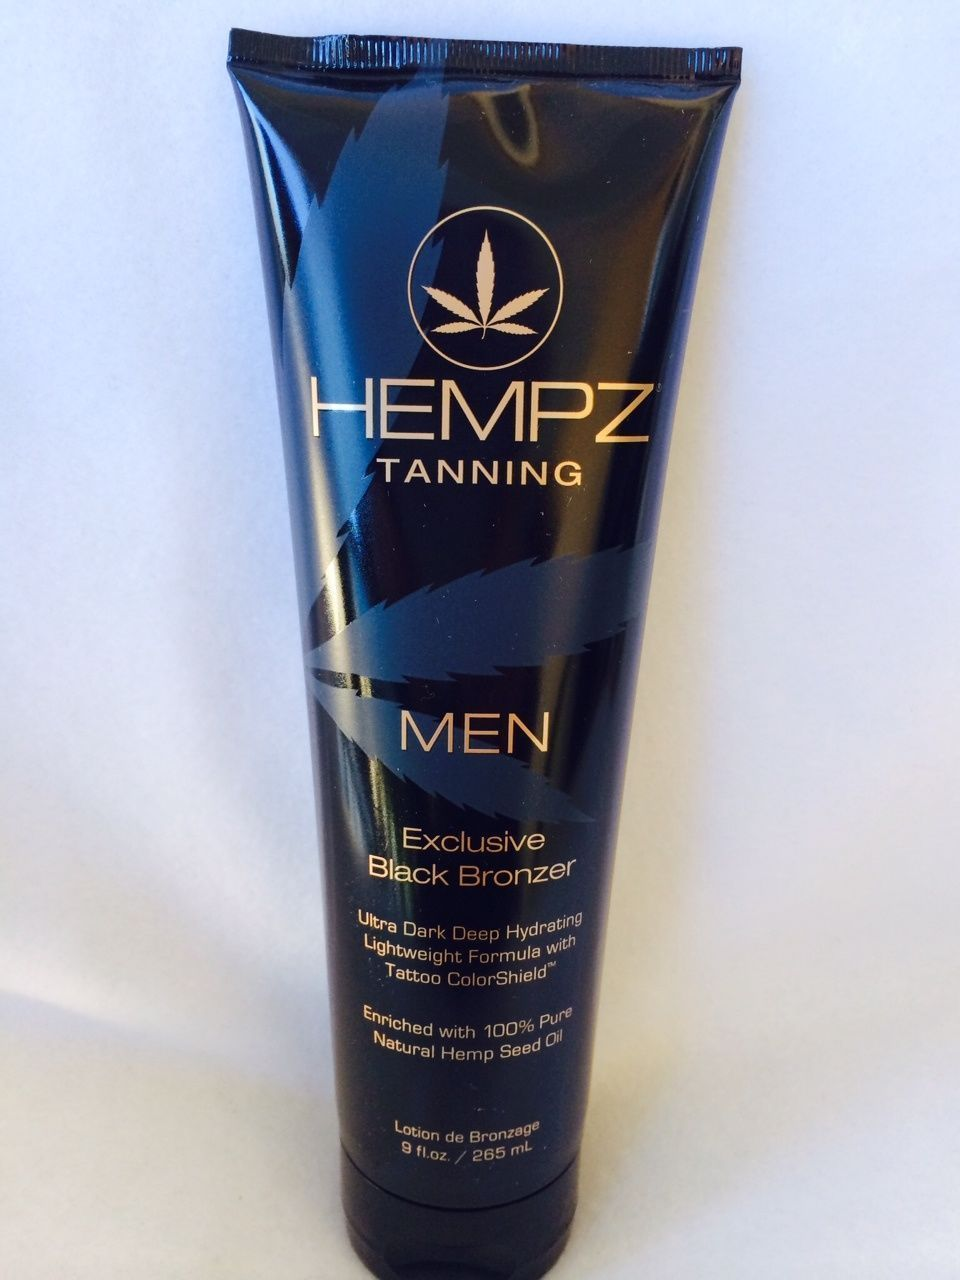 Hempz men exclusive black bronzer tattoo colorshield for Tanning beds and tattoos